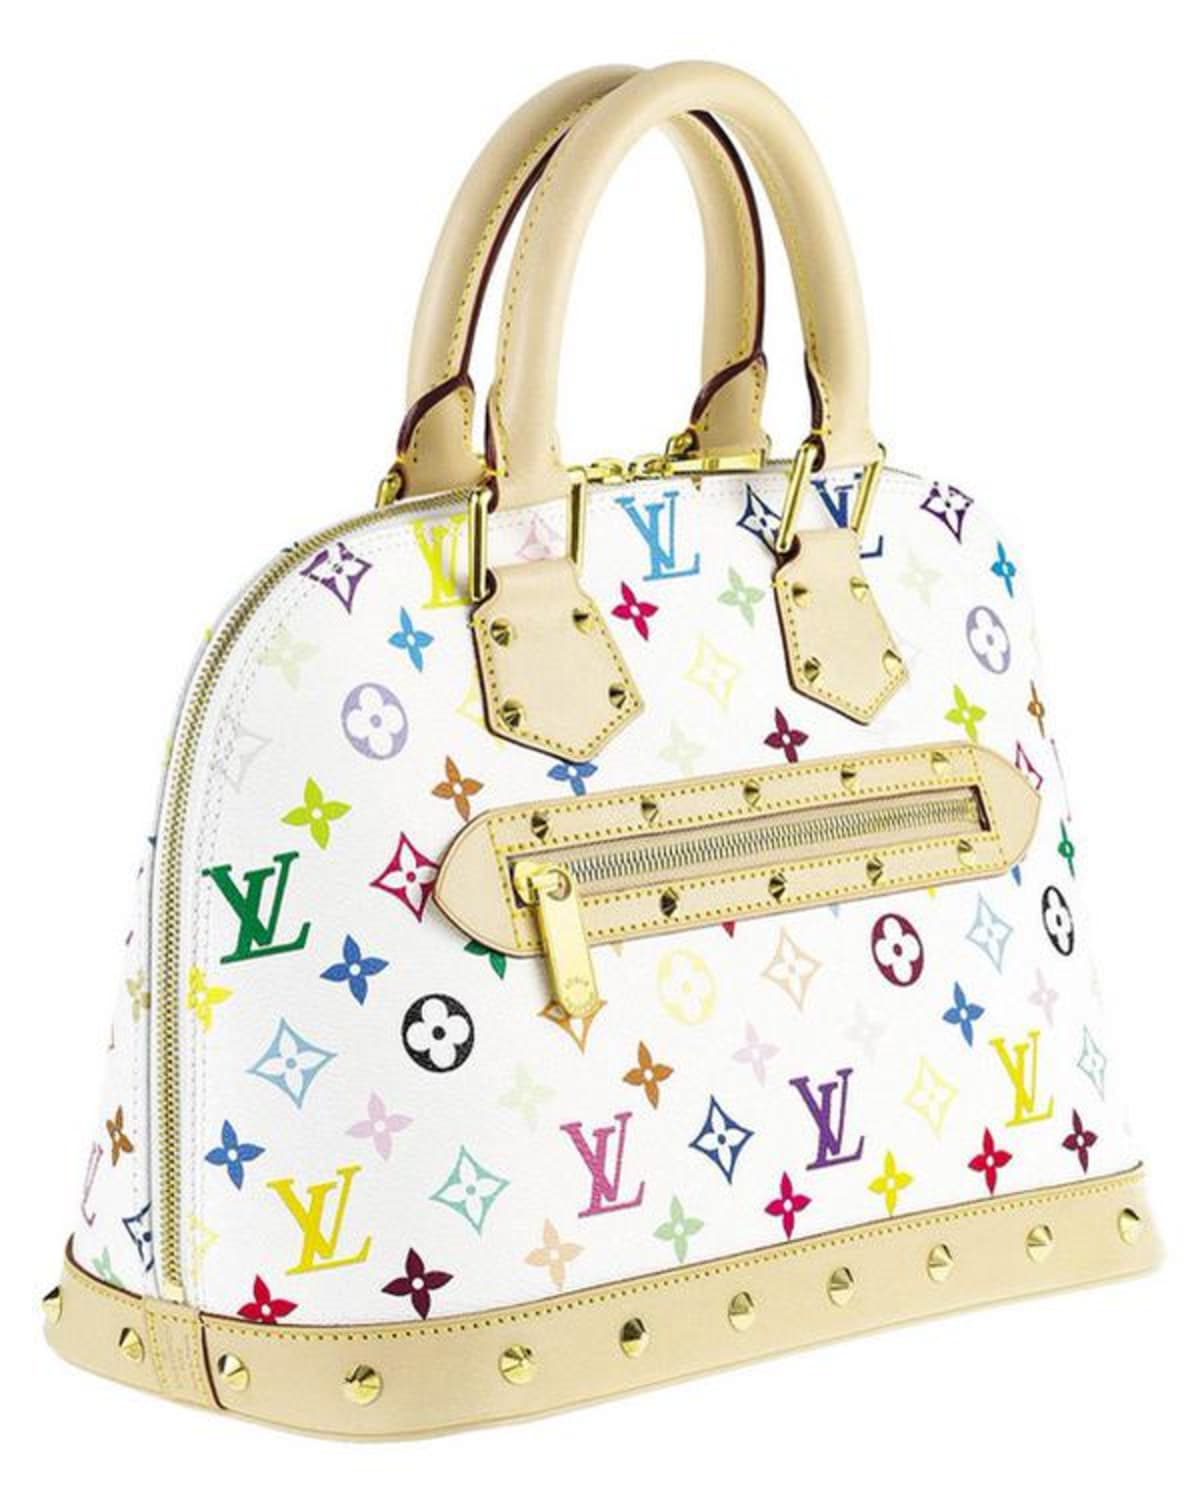 louis vuitton discontinues its takashi murakami collection